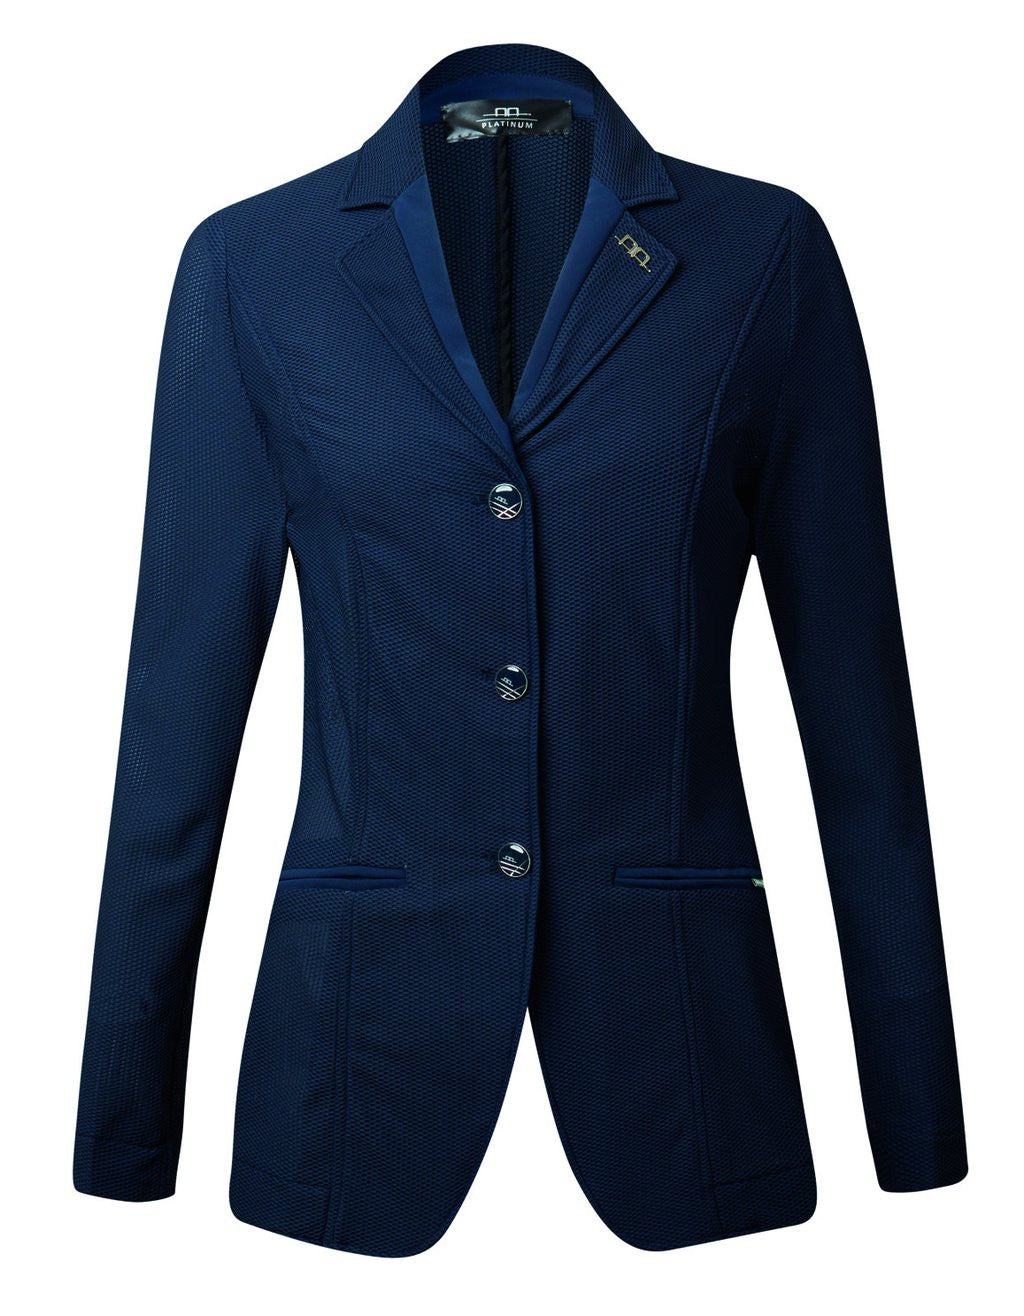 AA Platinum Alessandro Albanese Motion Lite Show Jacket - Luxe EQ